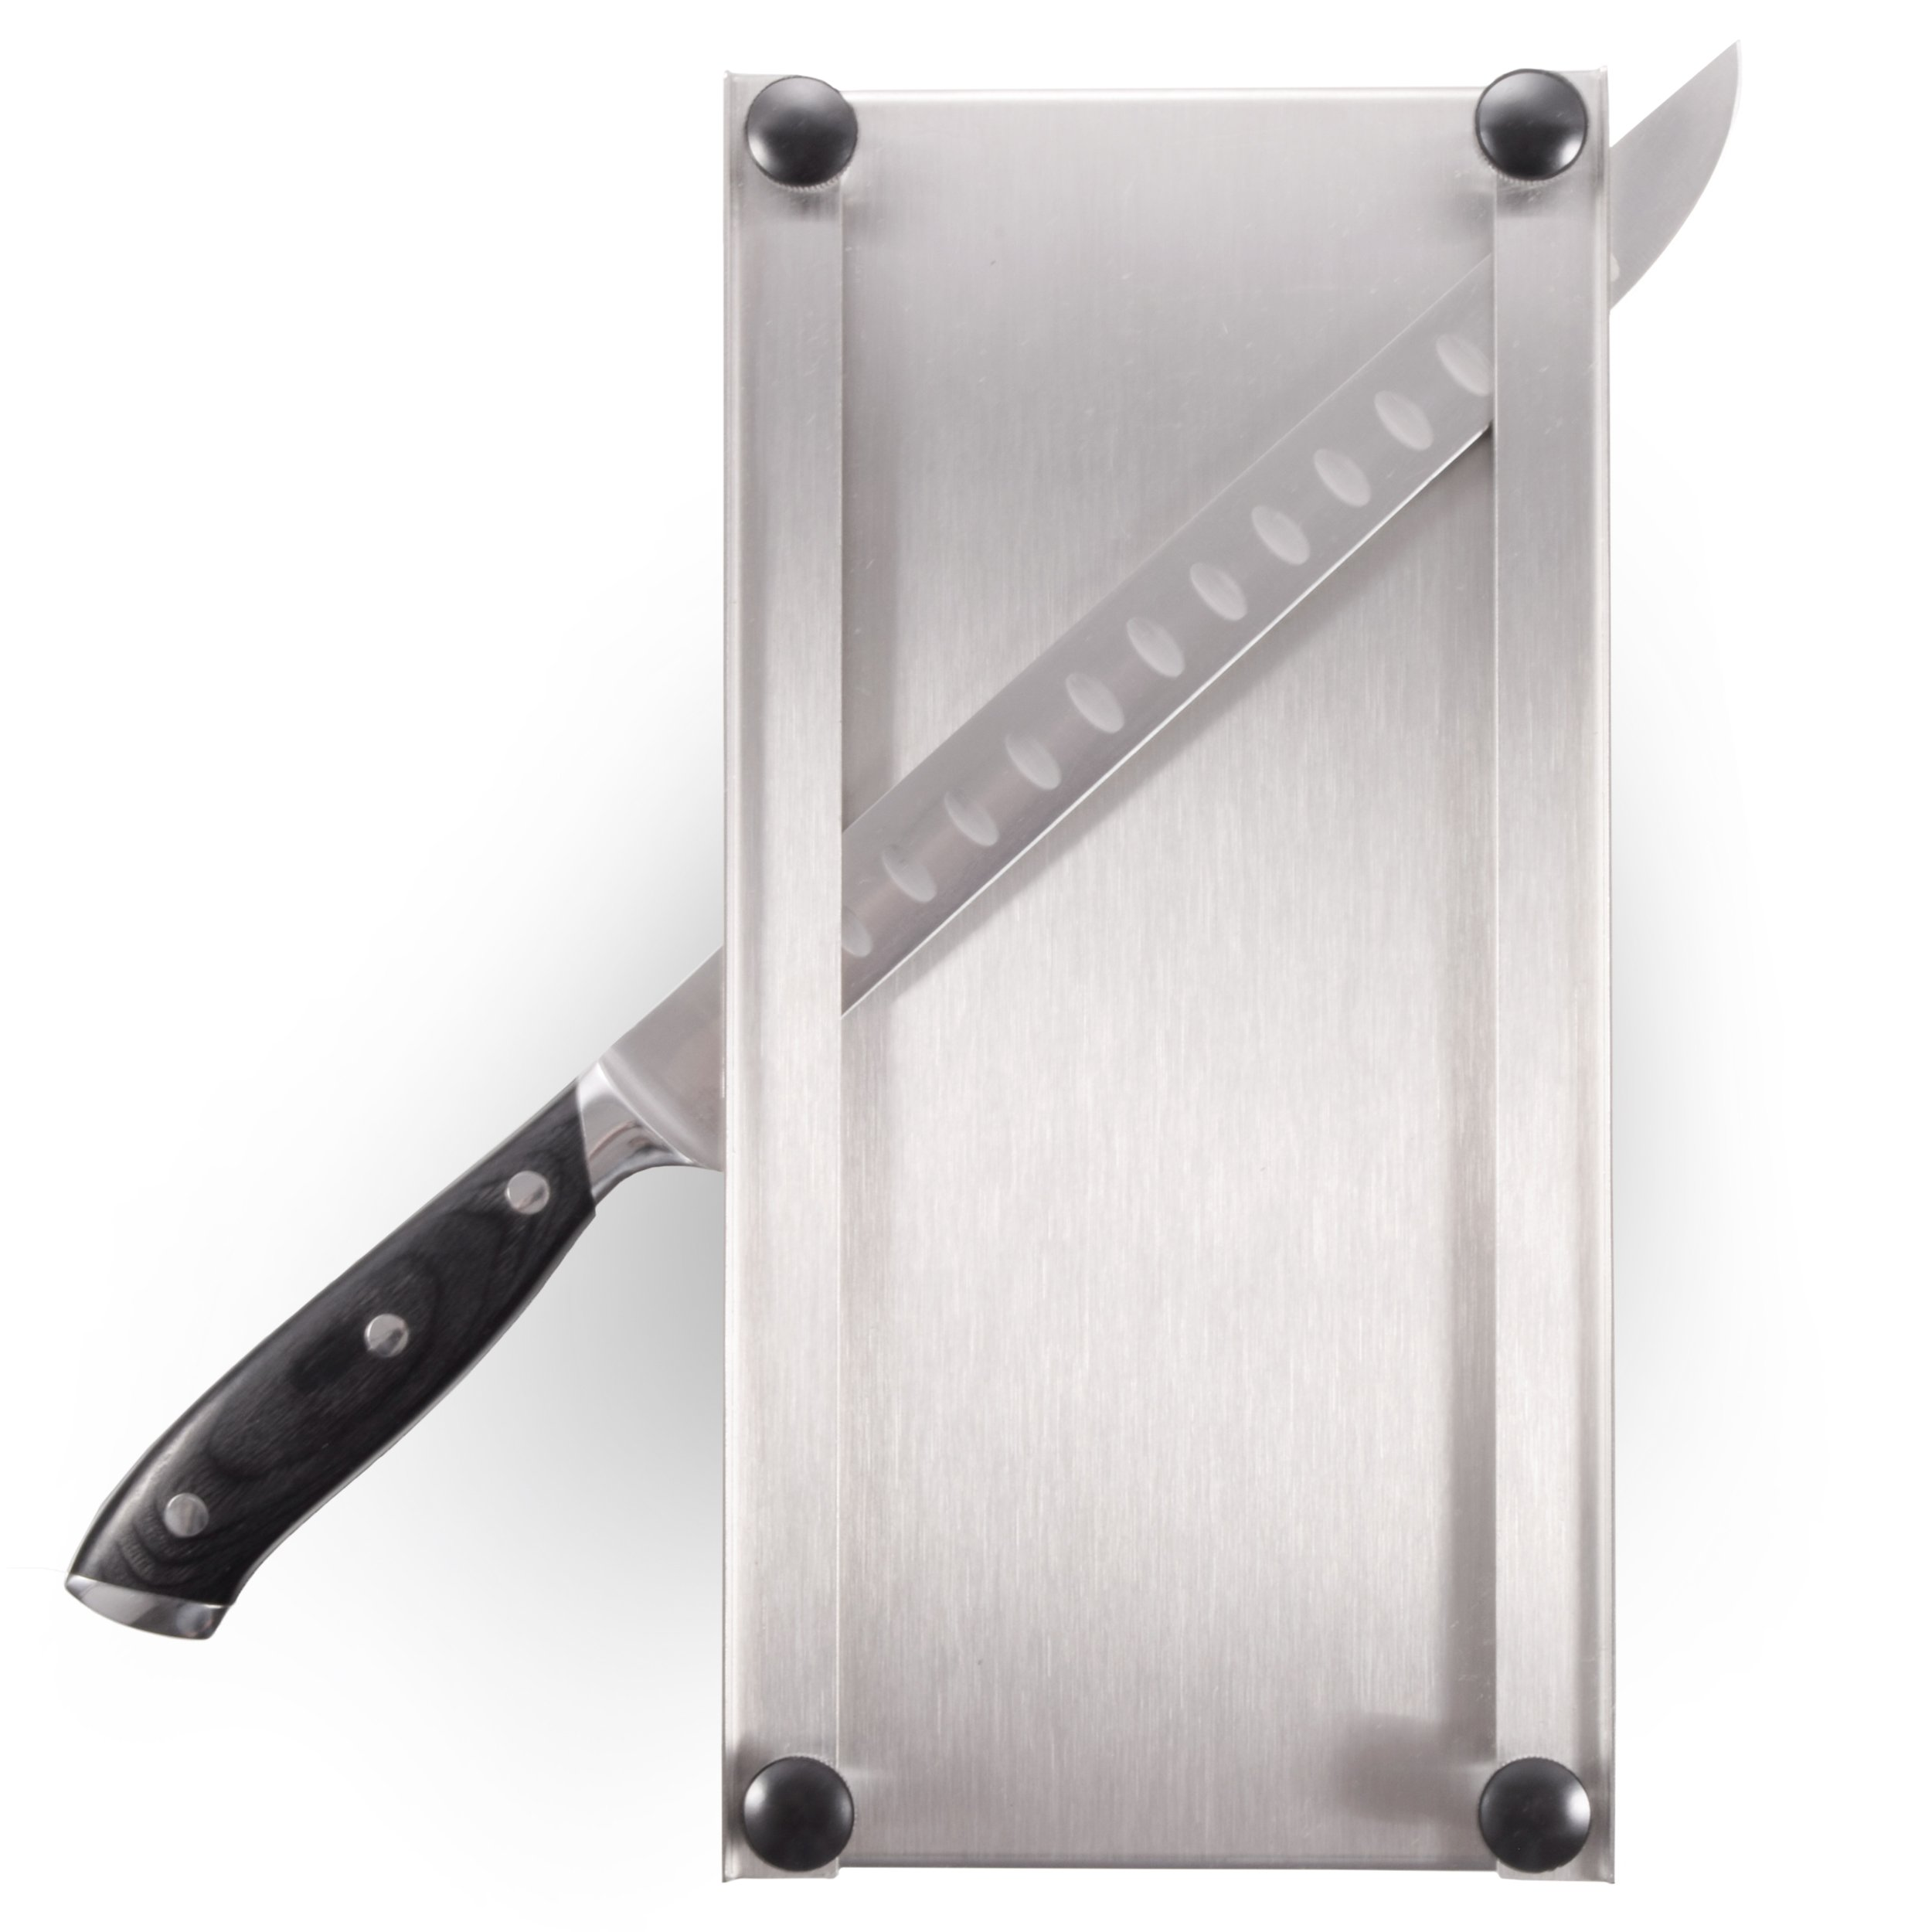 Shop-Ezy Stainless Steel Jerky Maker Cutting Board With 10-Inch Professional Slicing and Carving Knife